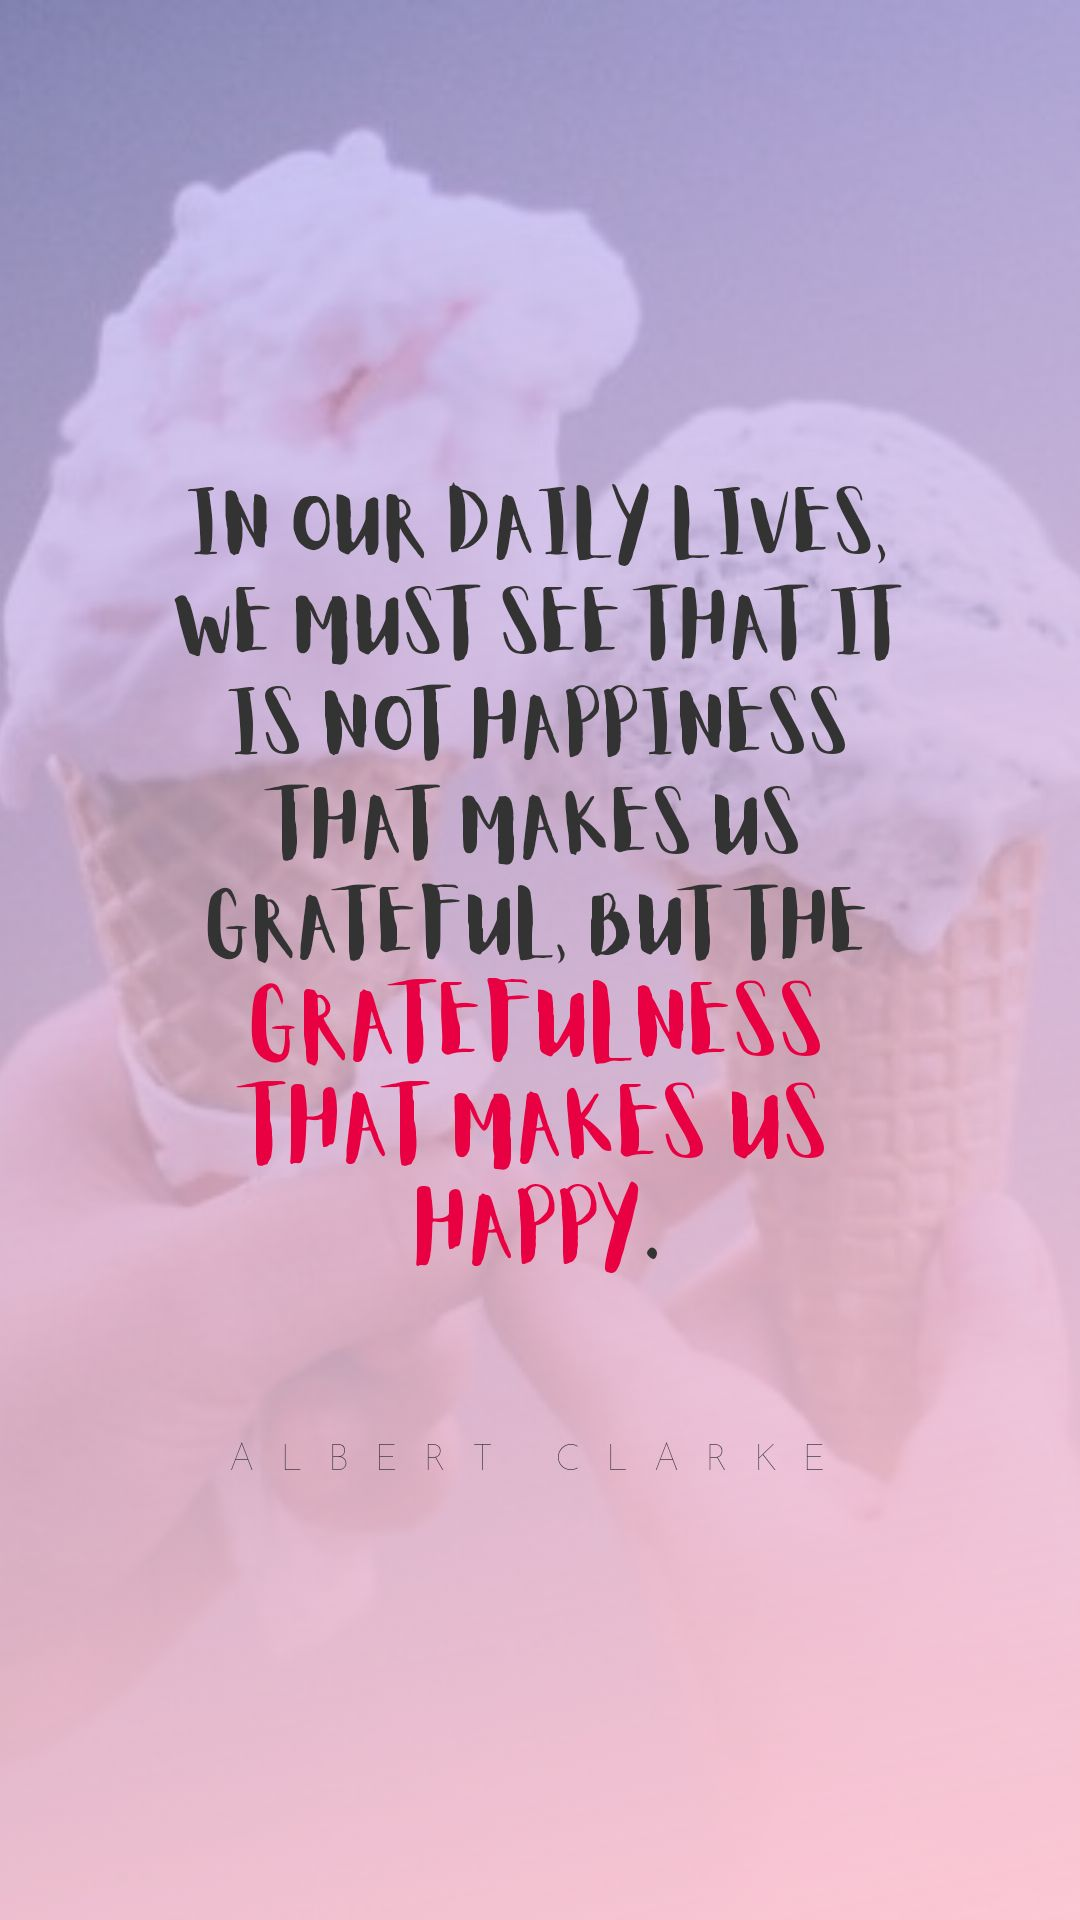 Quotes image of In our daily lives, we must see that it is not happiness that makes us grateful, but the gratefulness that makes us happy.